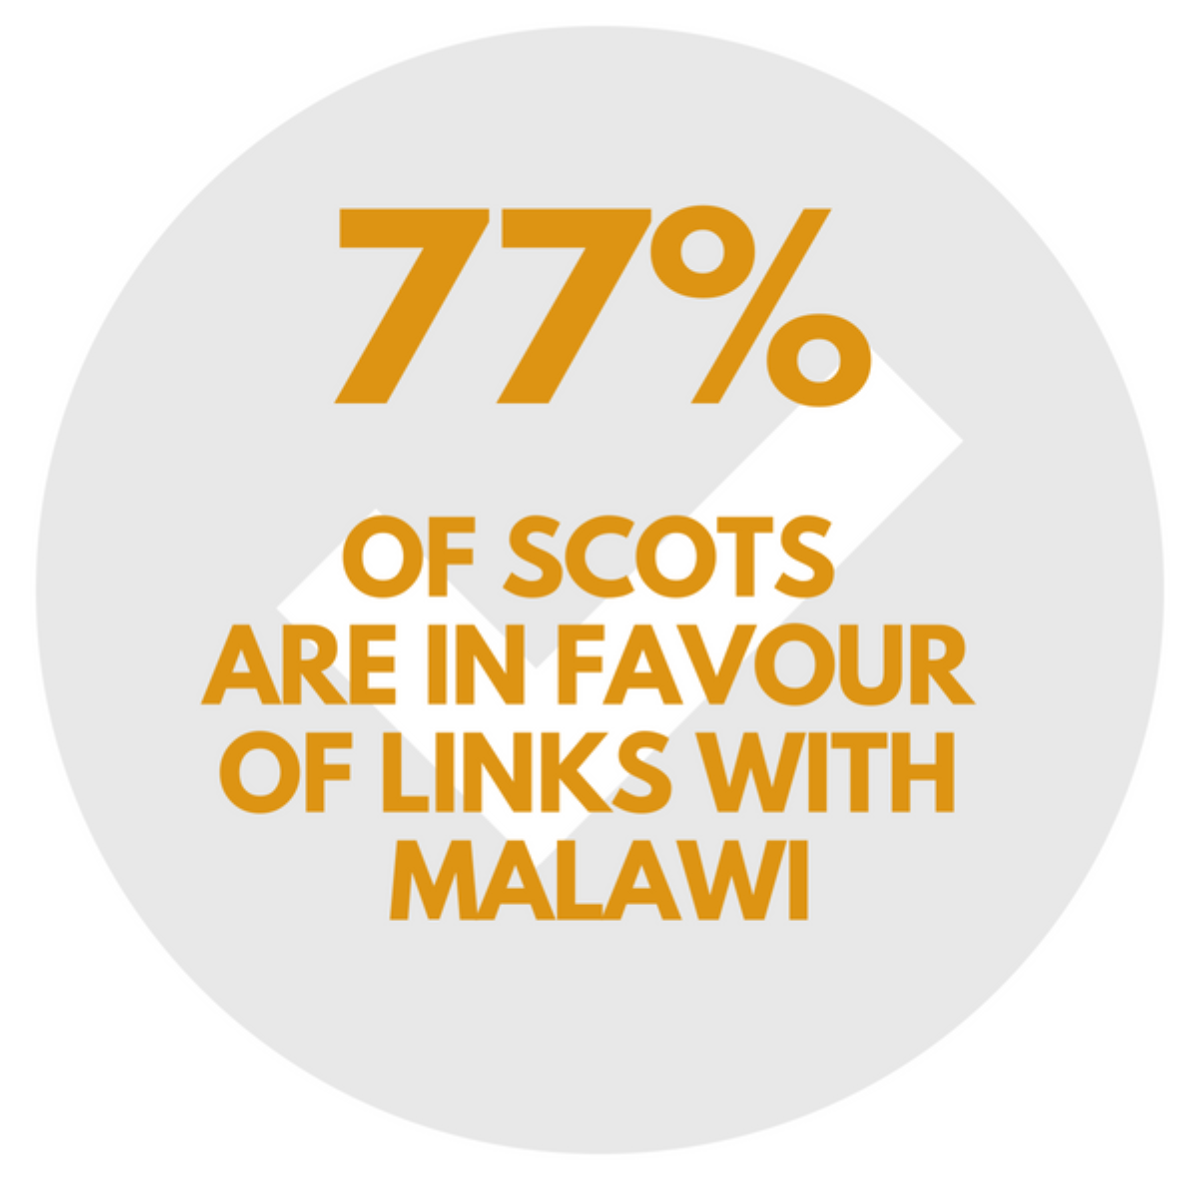 77 of scots in favour of malawi links